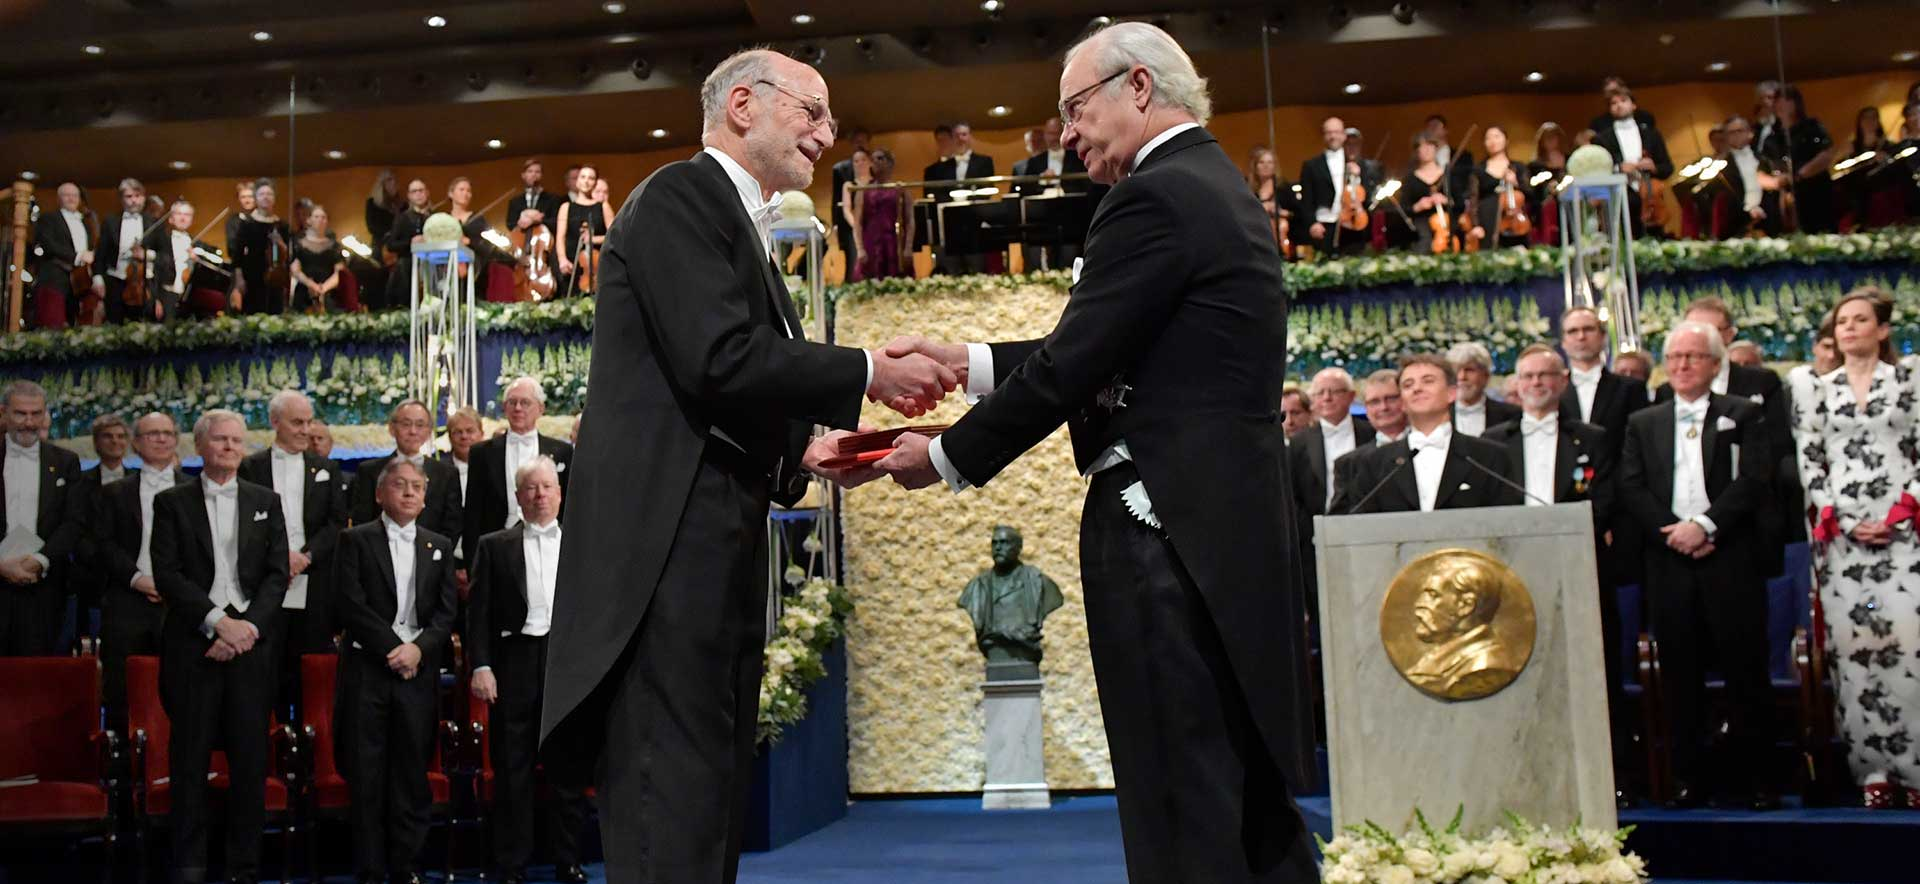 Michael Rosbash receiving the Nobel Prize in 2017